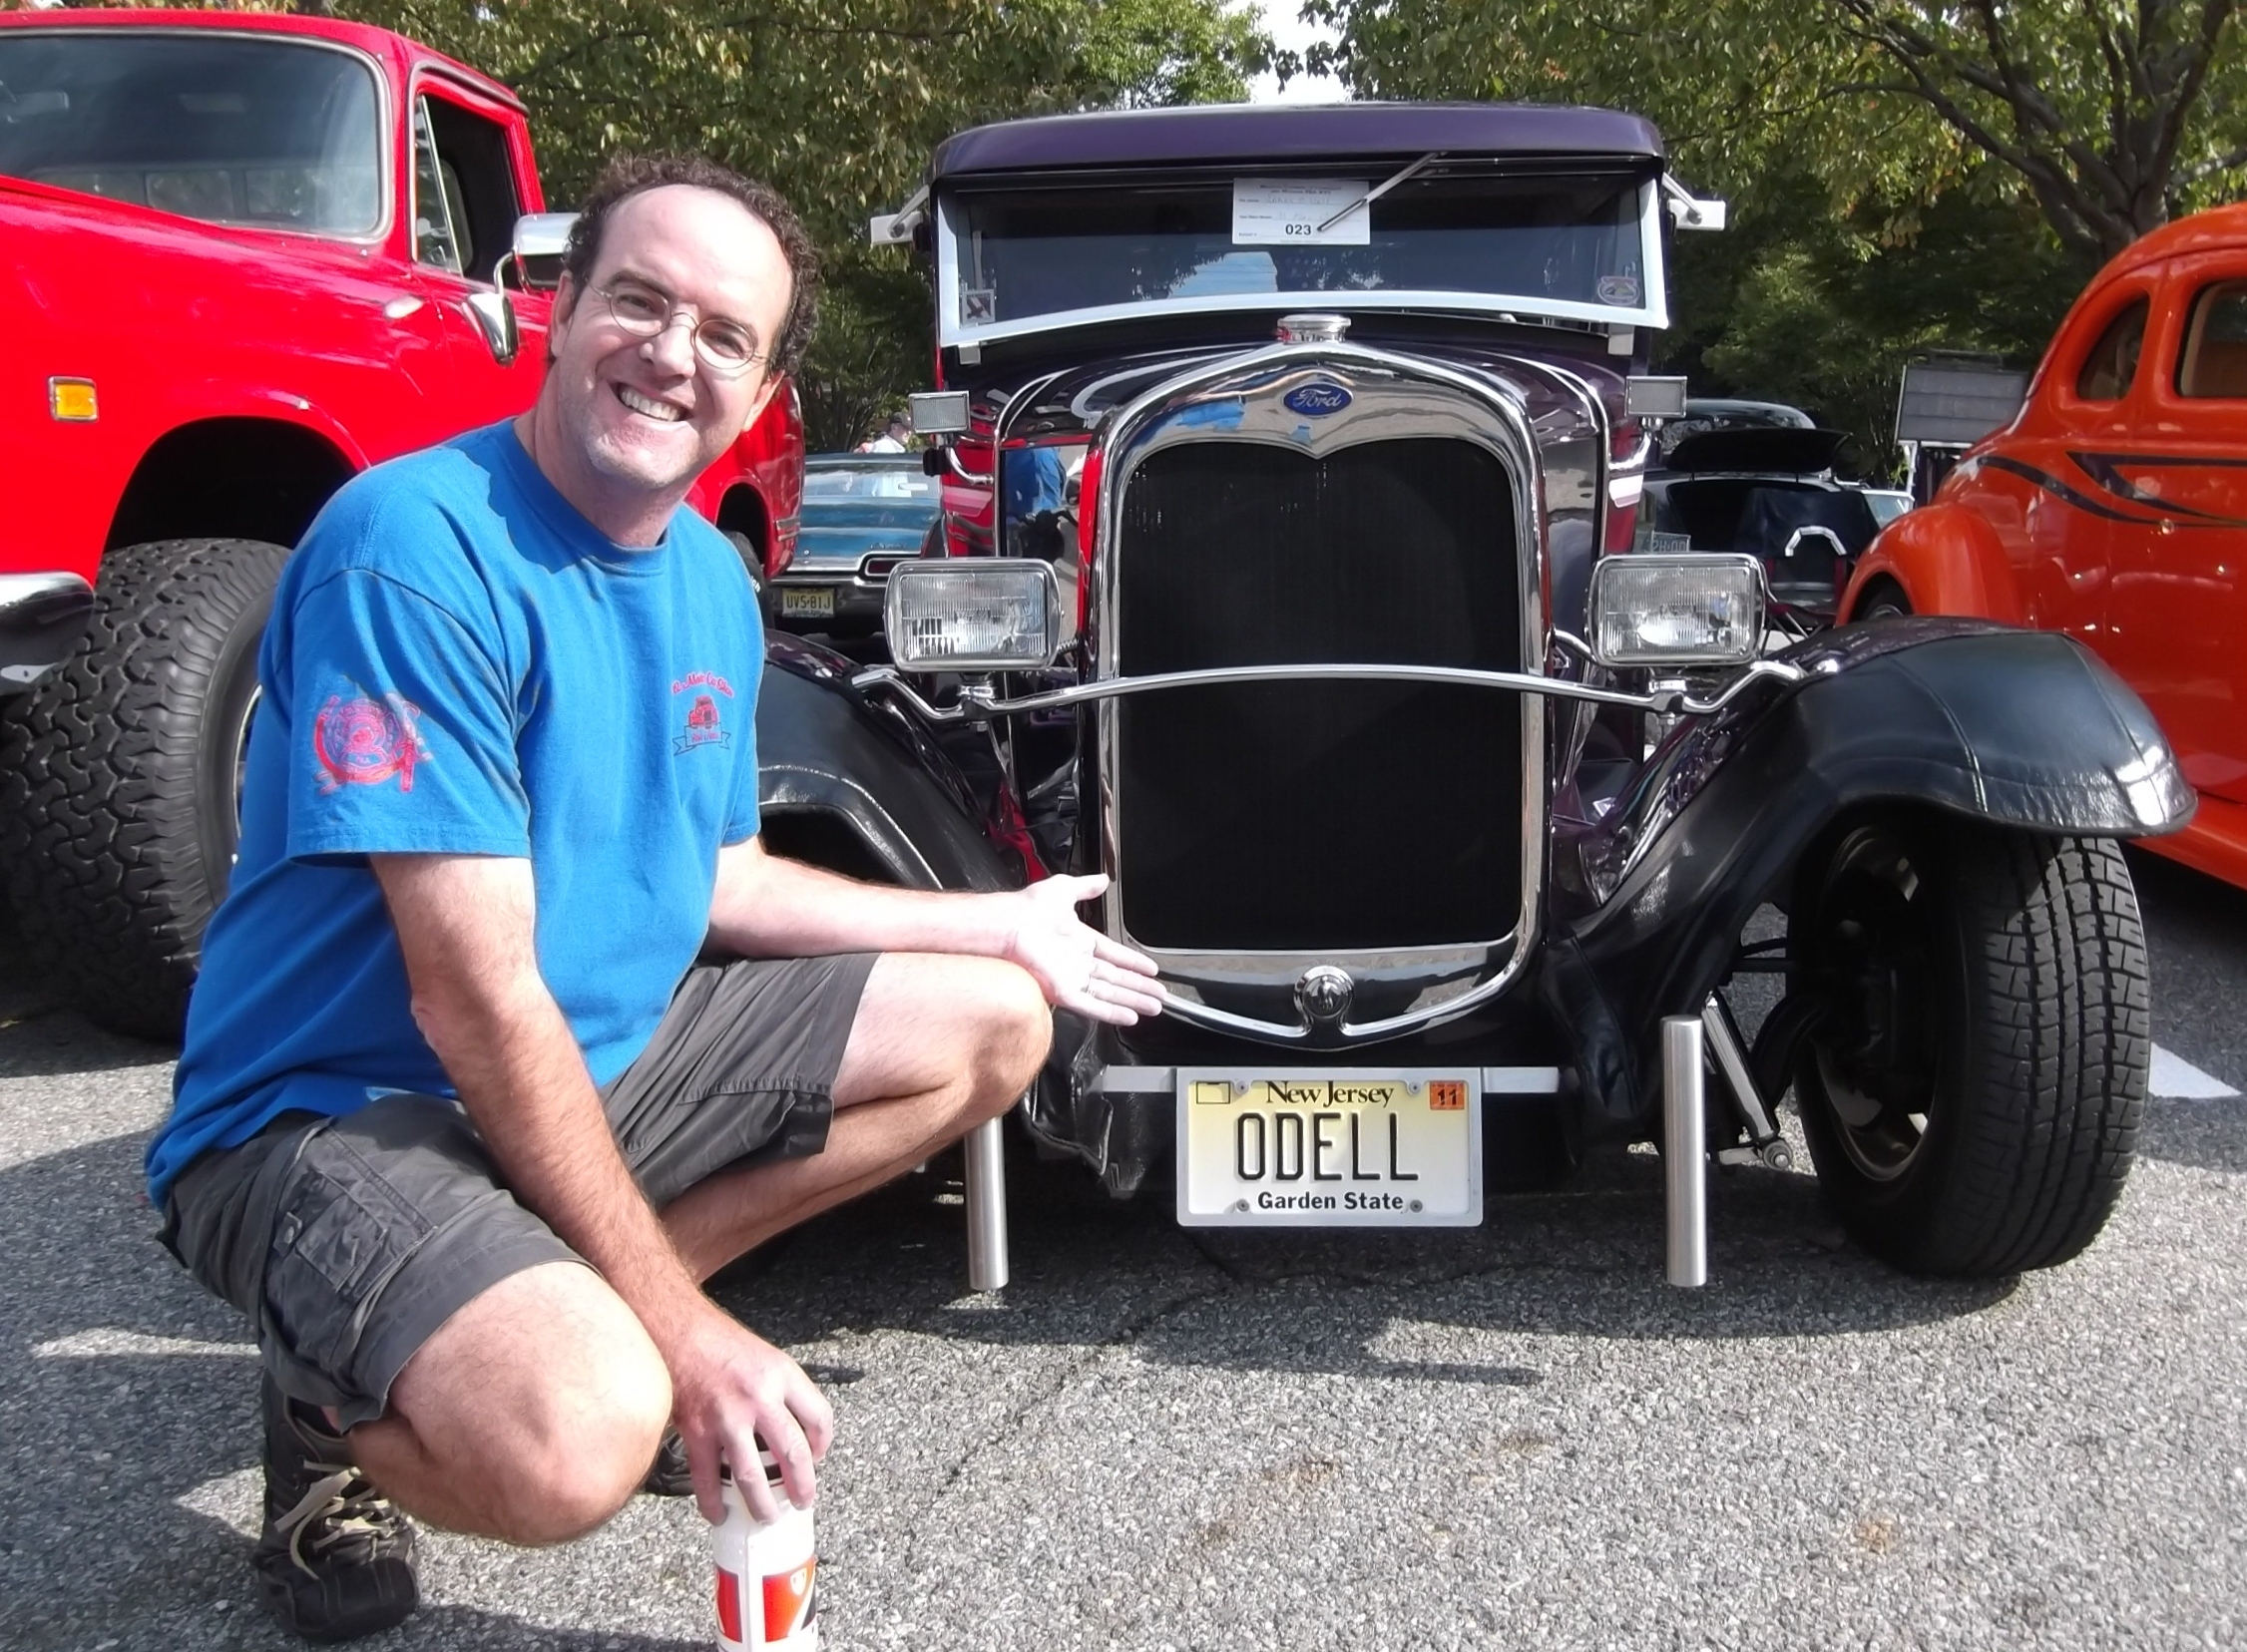 dc704bcaf53be86450f6_Auto_Show-_Odell_2012_picture.JPG